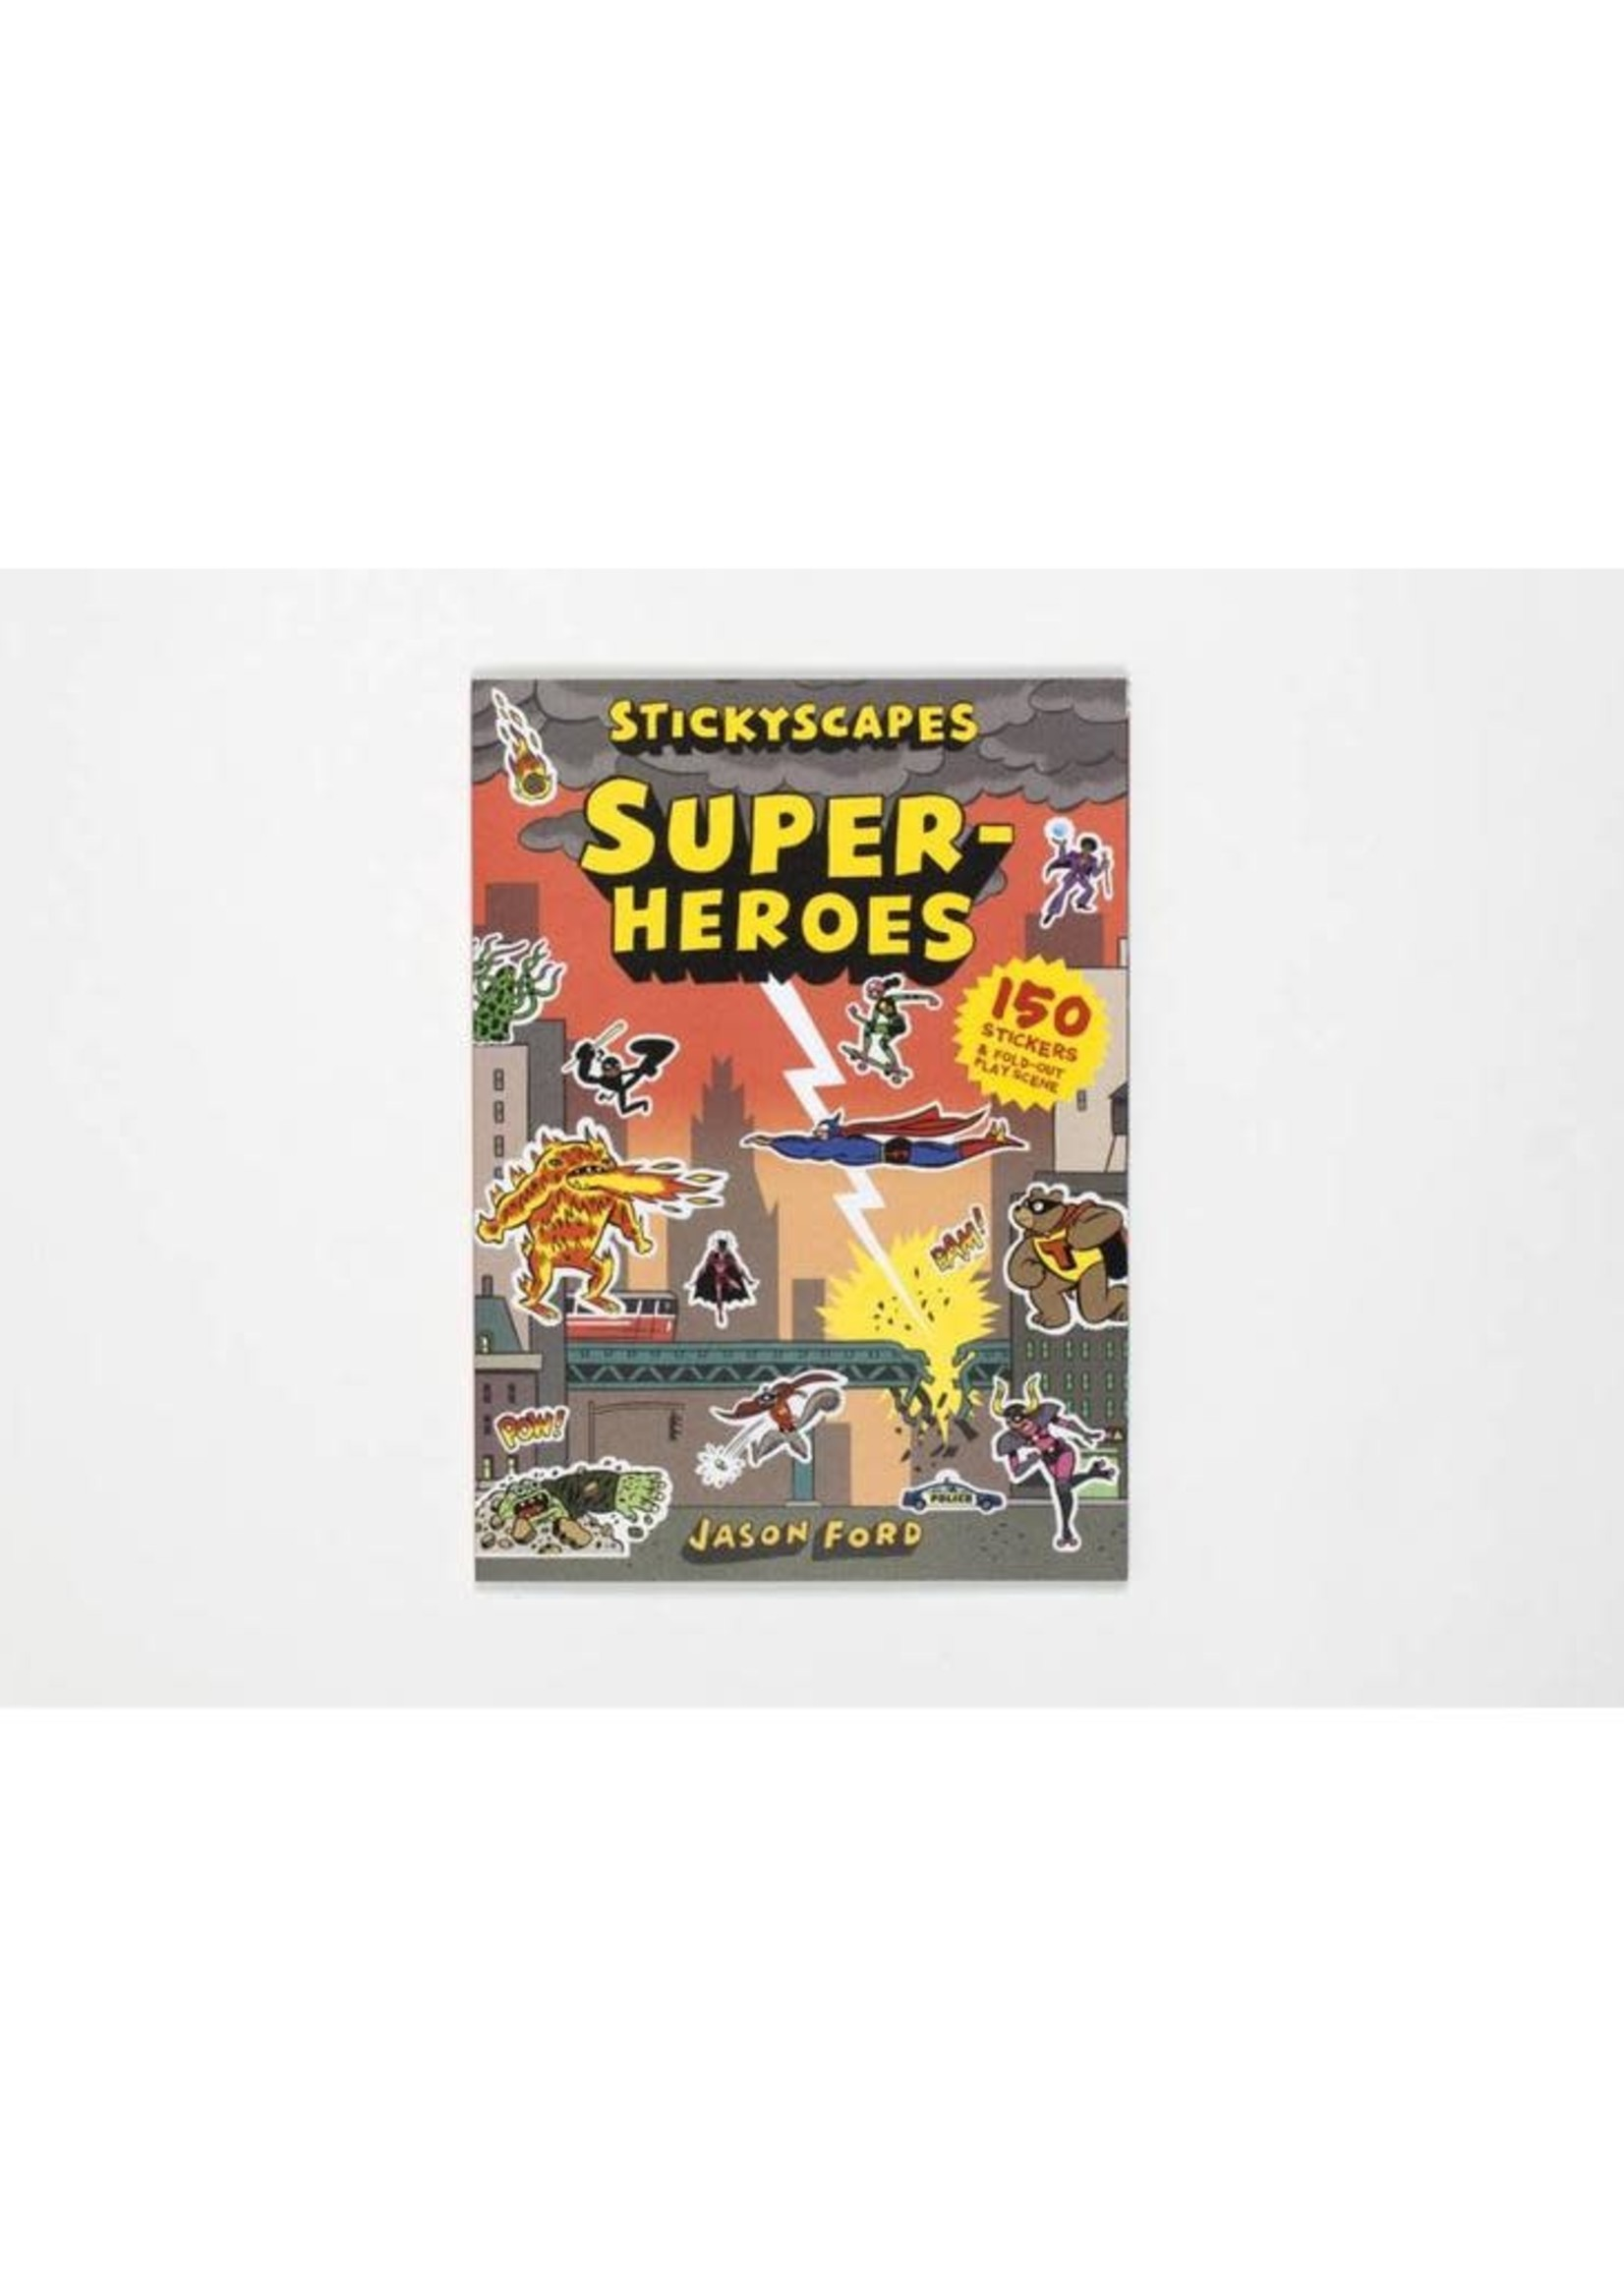 Stickyscaped Superheroes